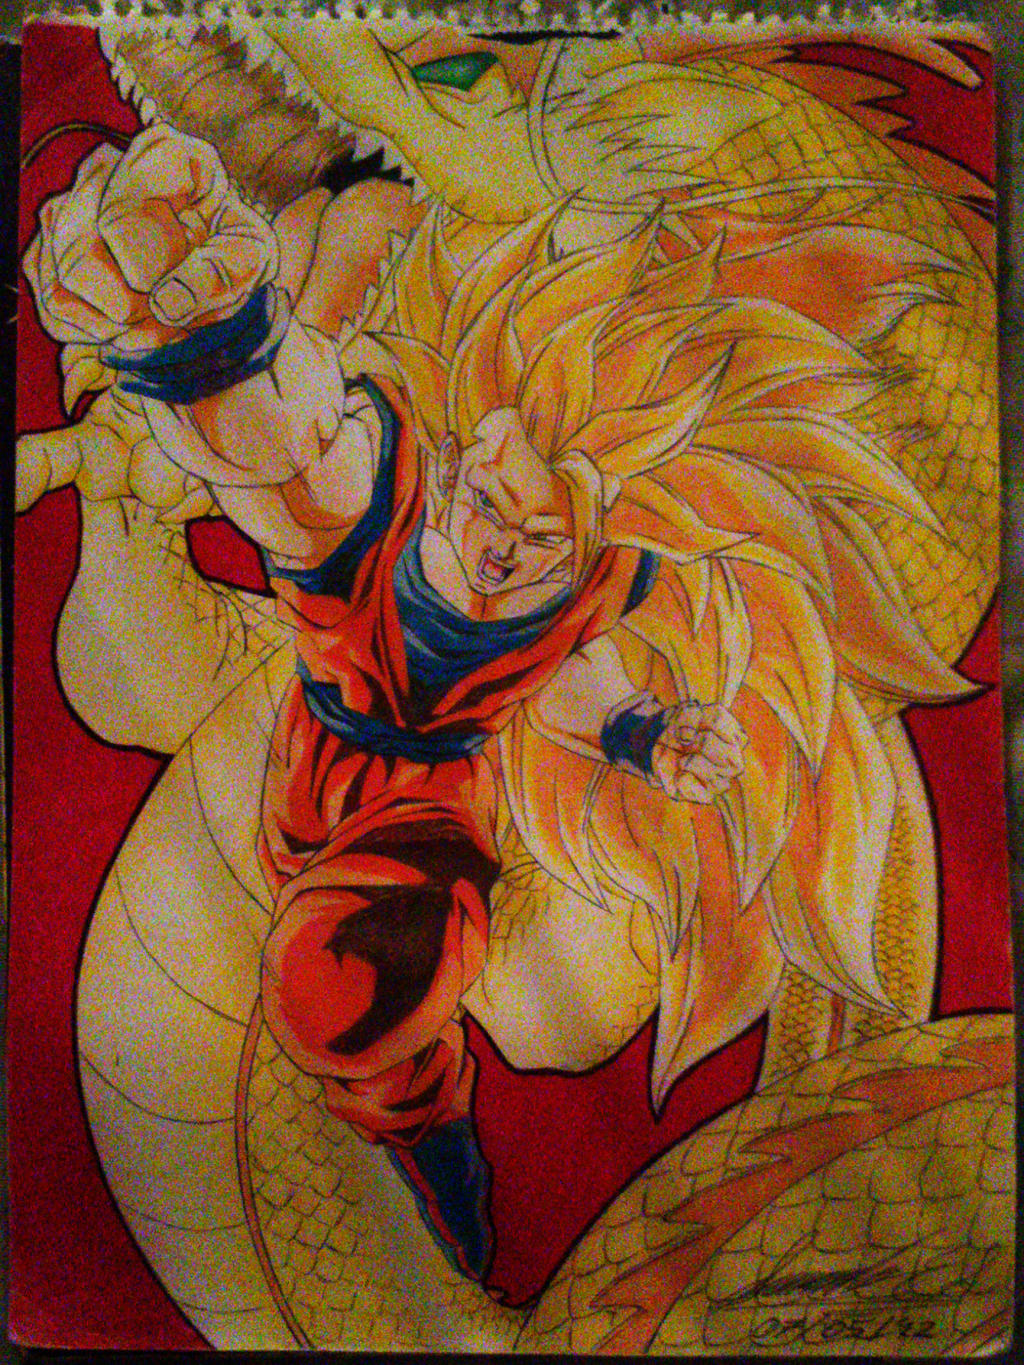 dragon_ball_tribute_4_by_aldairvii-d7yv8